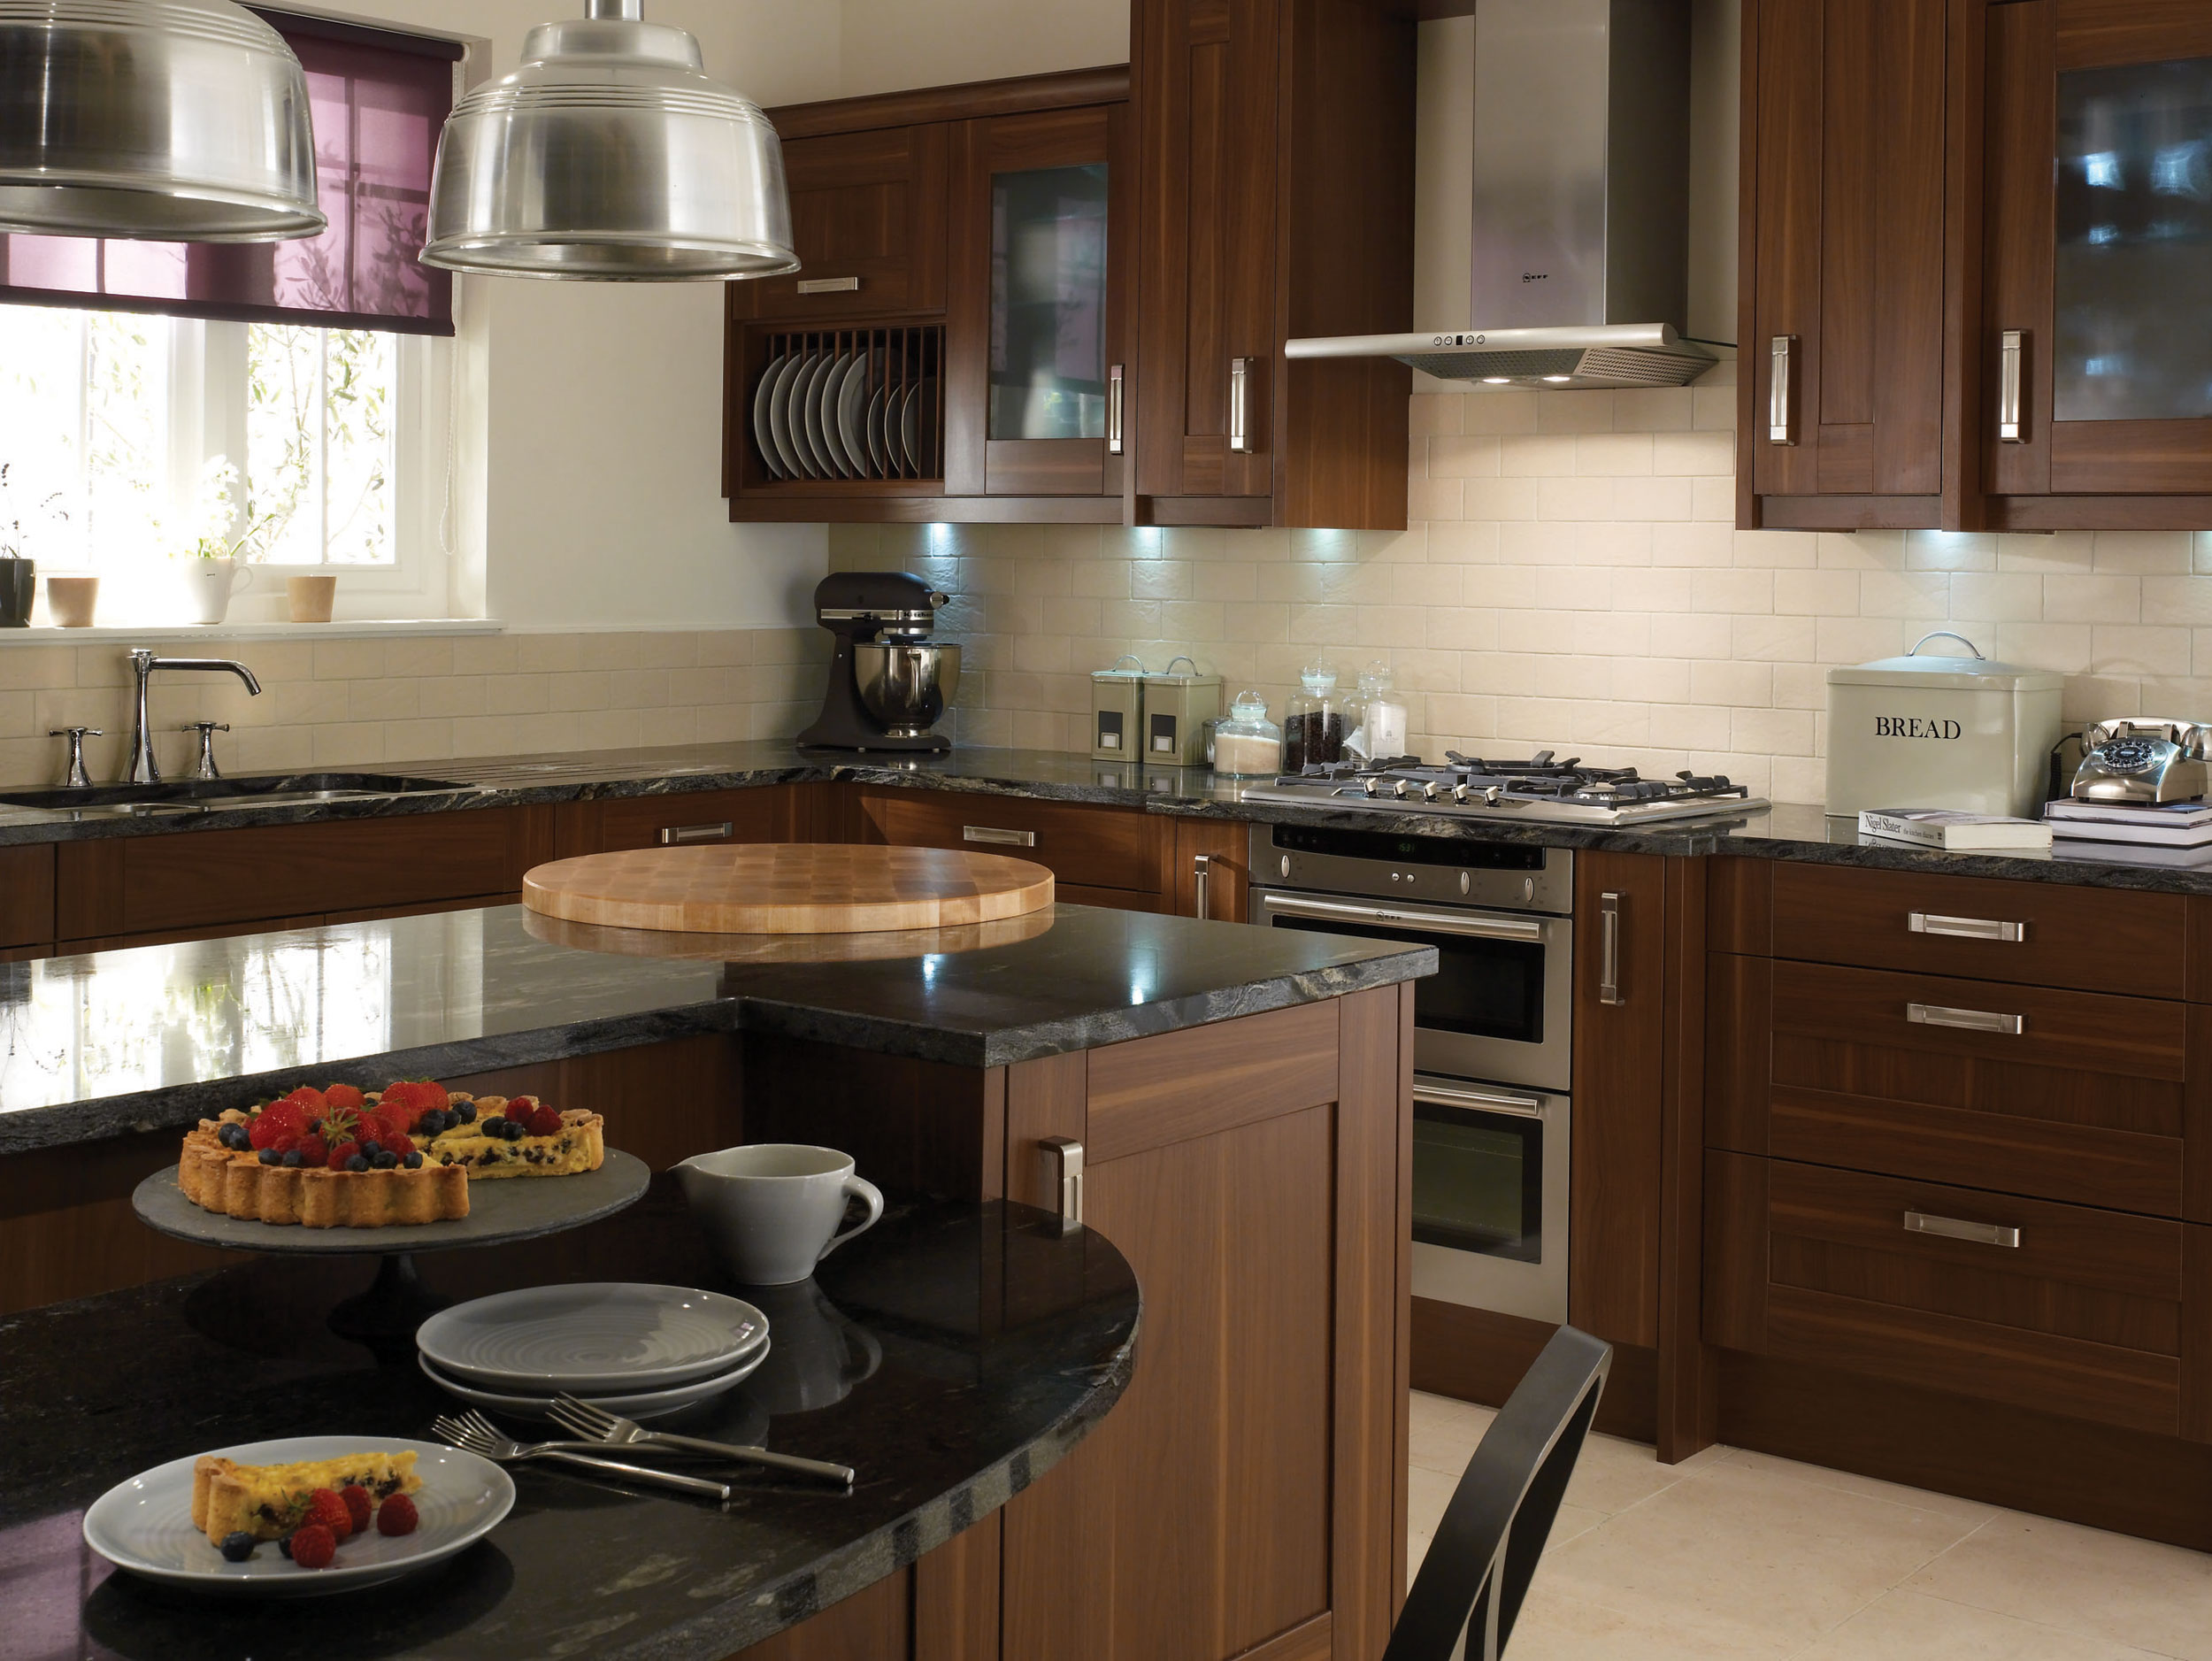 Seton walnut from eaton kitchen designs wolverhampton for Walnut kitchen designs